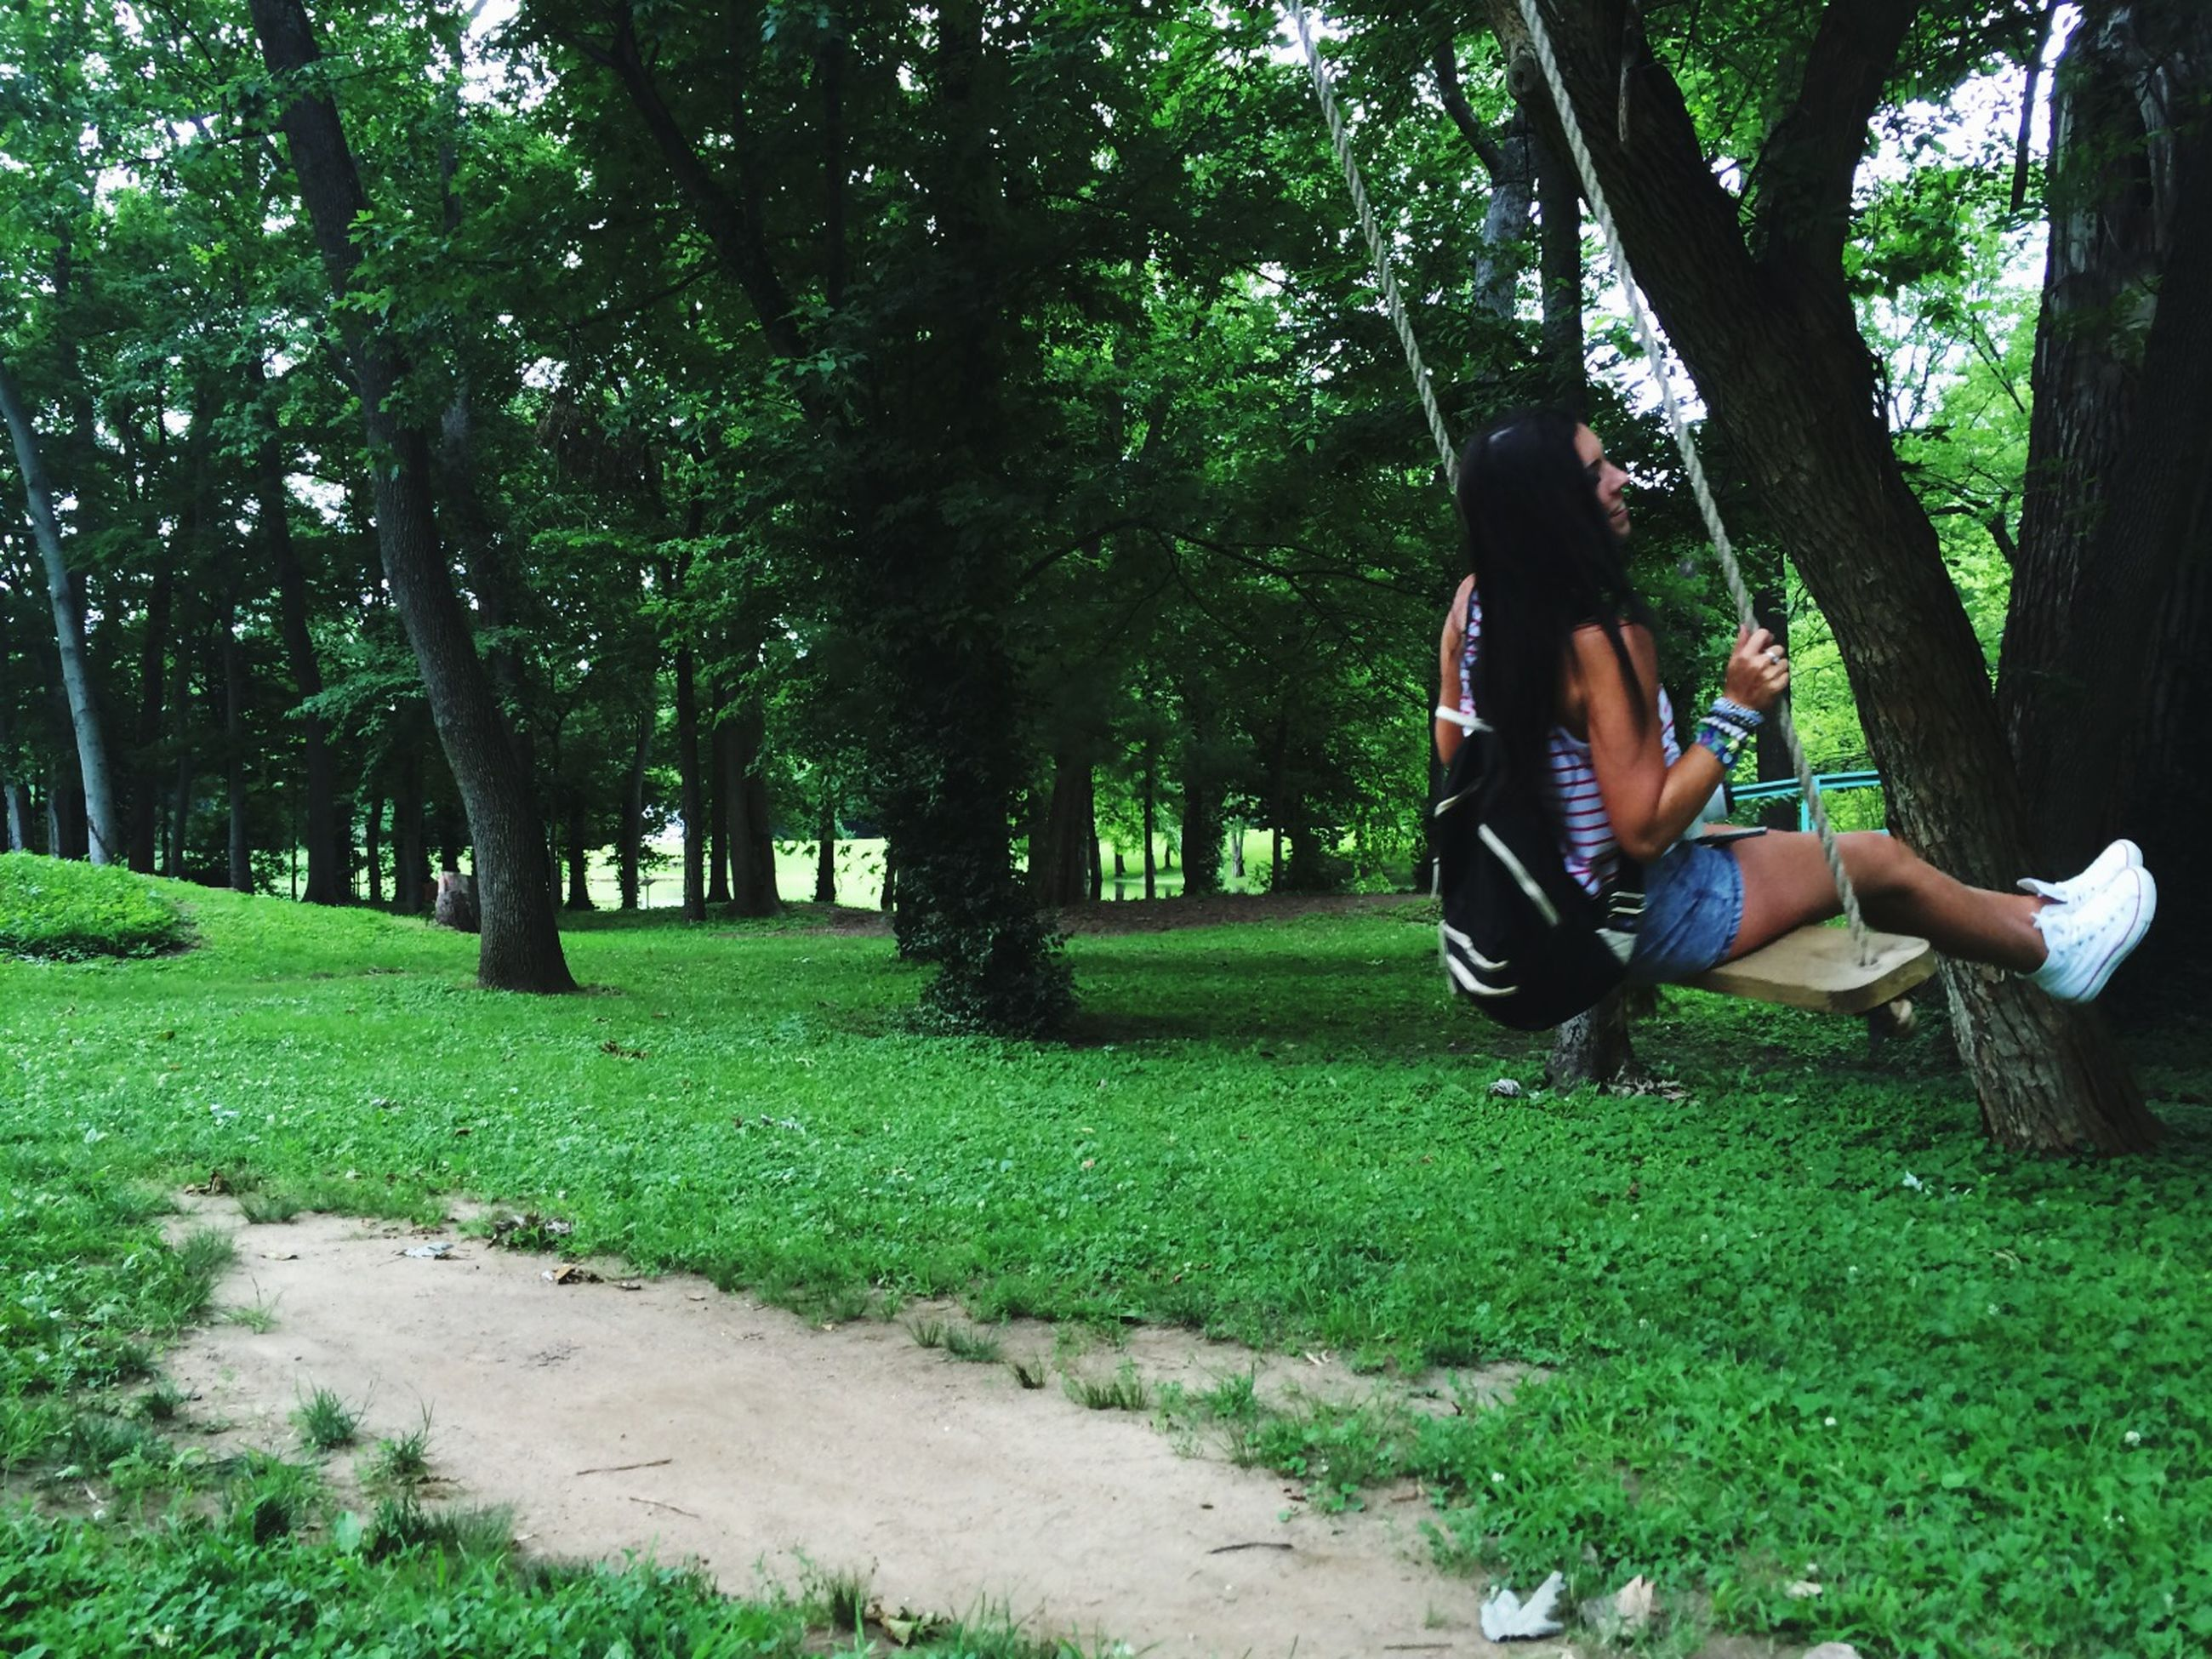 tree, lifestyles, leisure activity, grass, men, full length, green color, person, casual clothing, growth, park - man made space, sitting, tree trunk, rear view, nature, day, togetherness